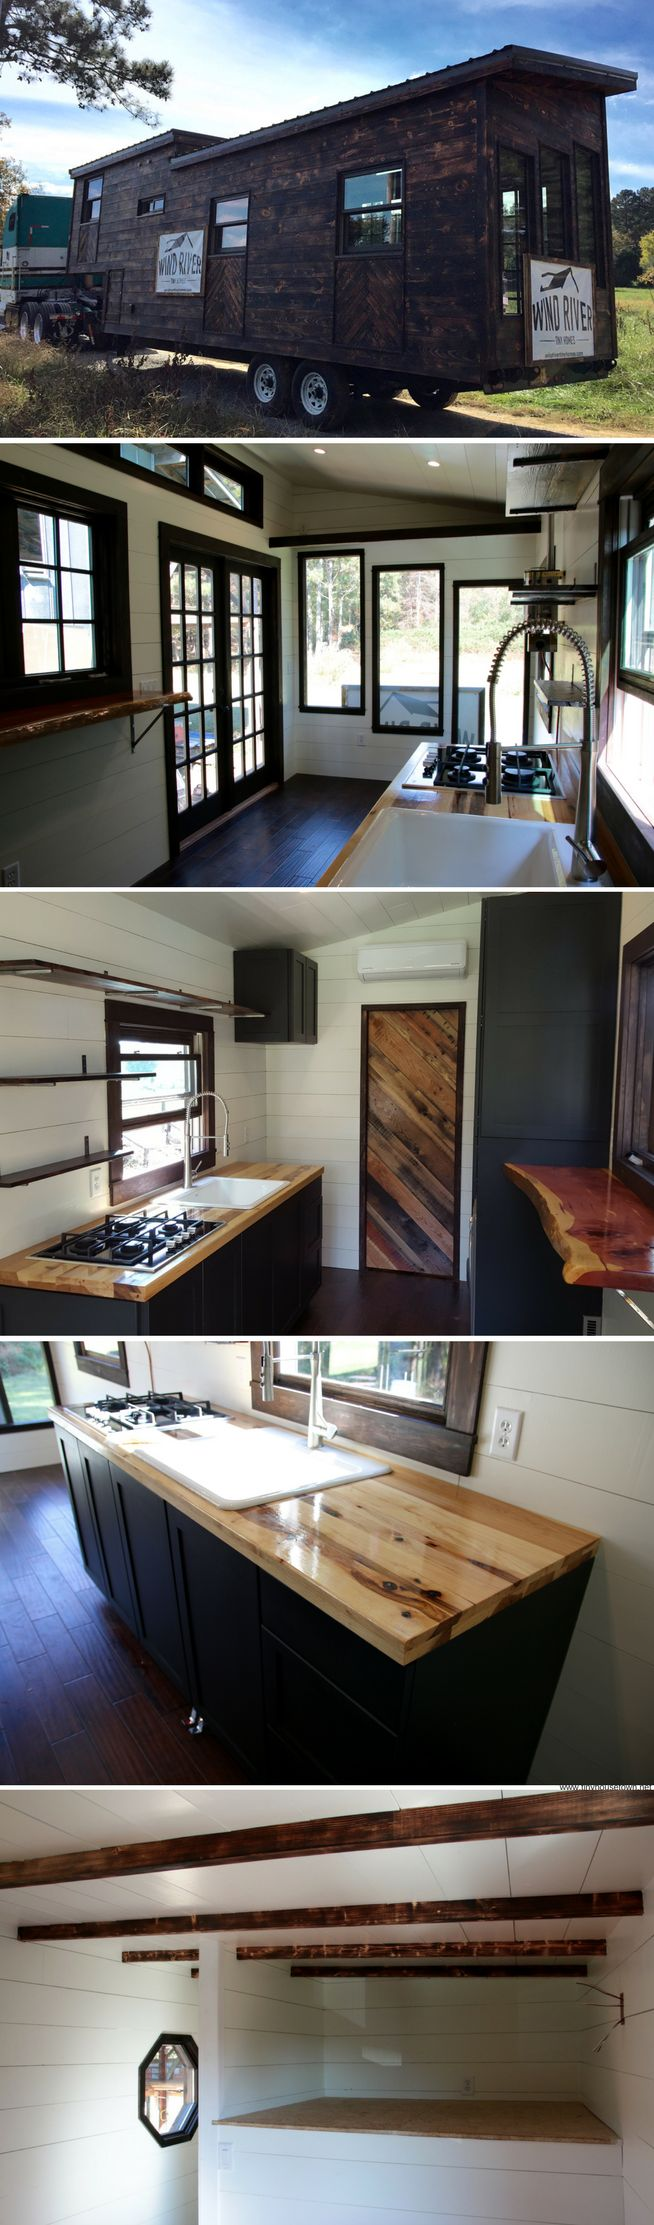 The Pheonix by Wind River Tiny Homes